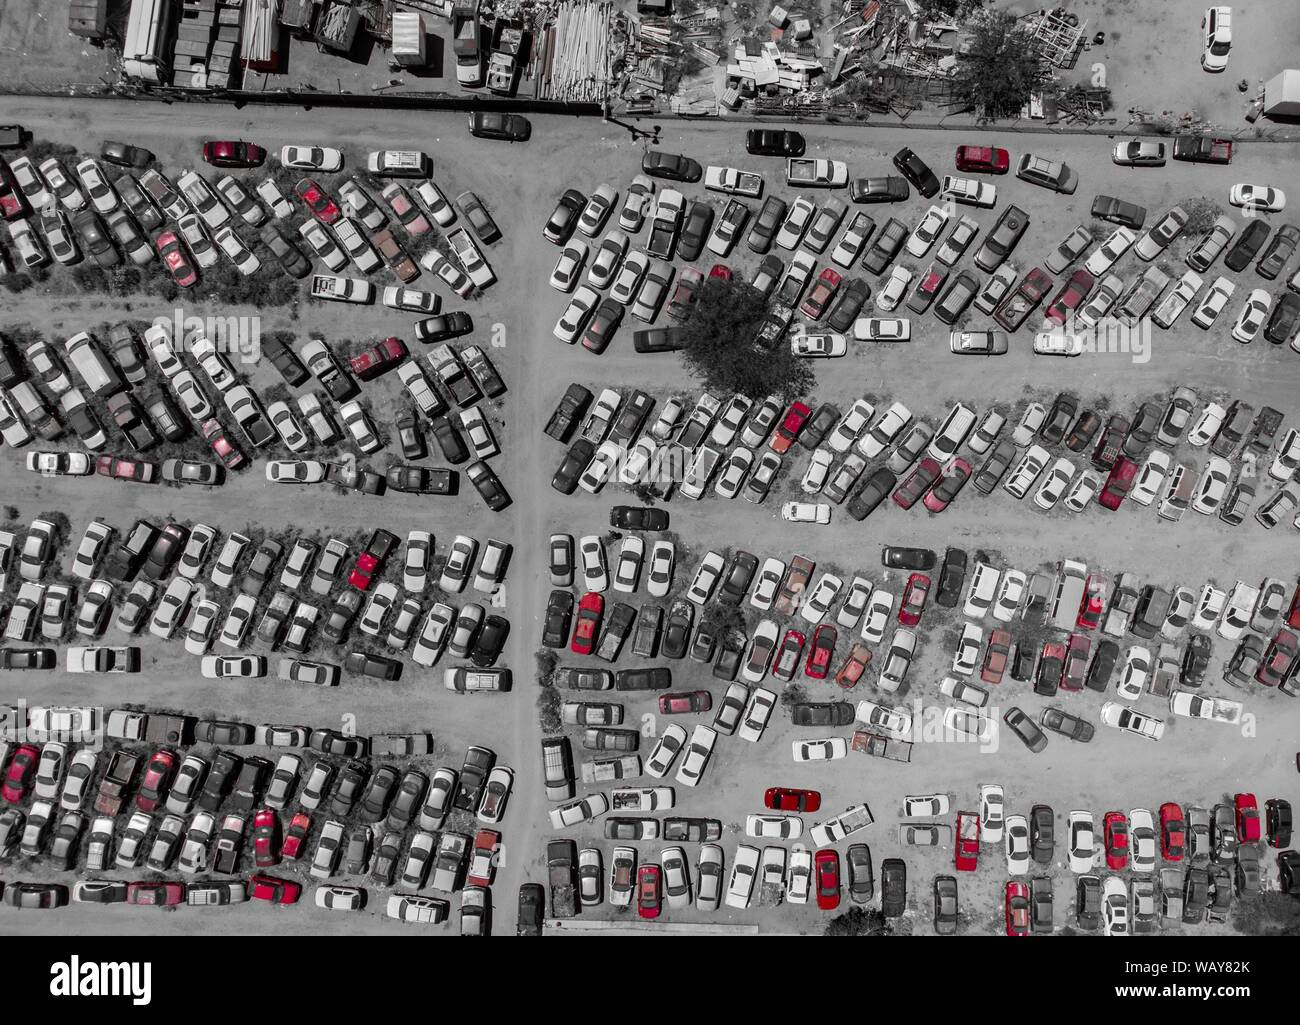 Aerial view of cars in the corralón, municipal corralón, cars stopped,Vista aerea de autos en el corralón, corralón municipal, automóviles detenidos. Hermosillo. Sonora. Photo: (NortePhoto / LuisGutierrez) keywords: aerial, aerial, aerial photo, aerial photography, urban, urbanity, city, many, lines, rectangle, rectangles, geometry, several, car, cars, motoring, cars, lanscape, urban landscape, luz de dia, daylight, aerial, aerea, aerial photo, aerial photography, urban, urbanidad, ciudad,  muchos, lineas, rectángulo, rectángulos, geometria, varios, car, cars, automovilismos , automóviles, lan Stock Photo